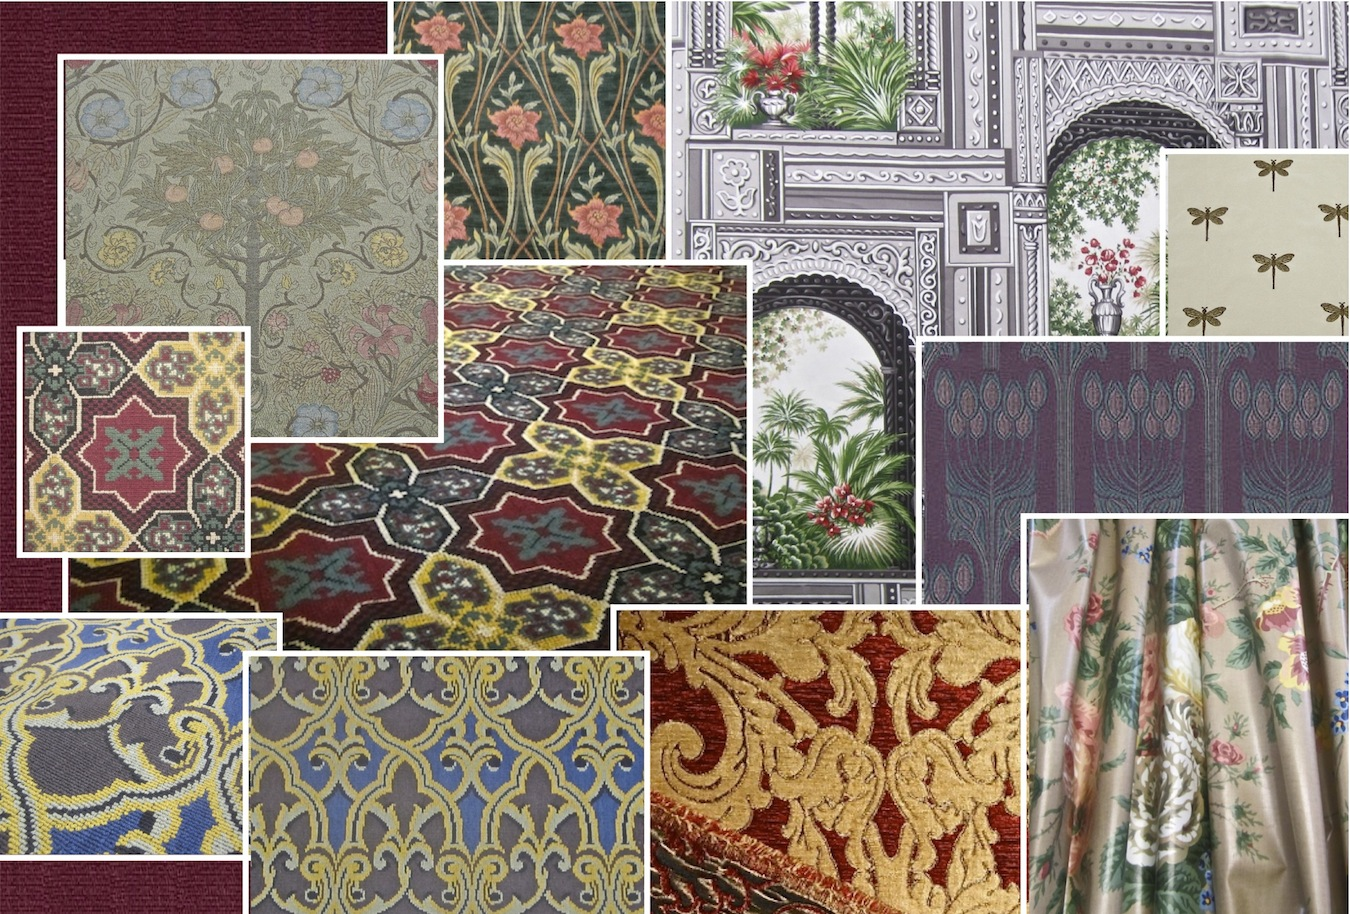 new gothic victorian arts crafts aesthetic eastlake art nouveau fabrics just arrived at restoration fabrics and trims a treasure trove including - First Dibs Home Decor